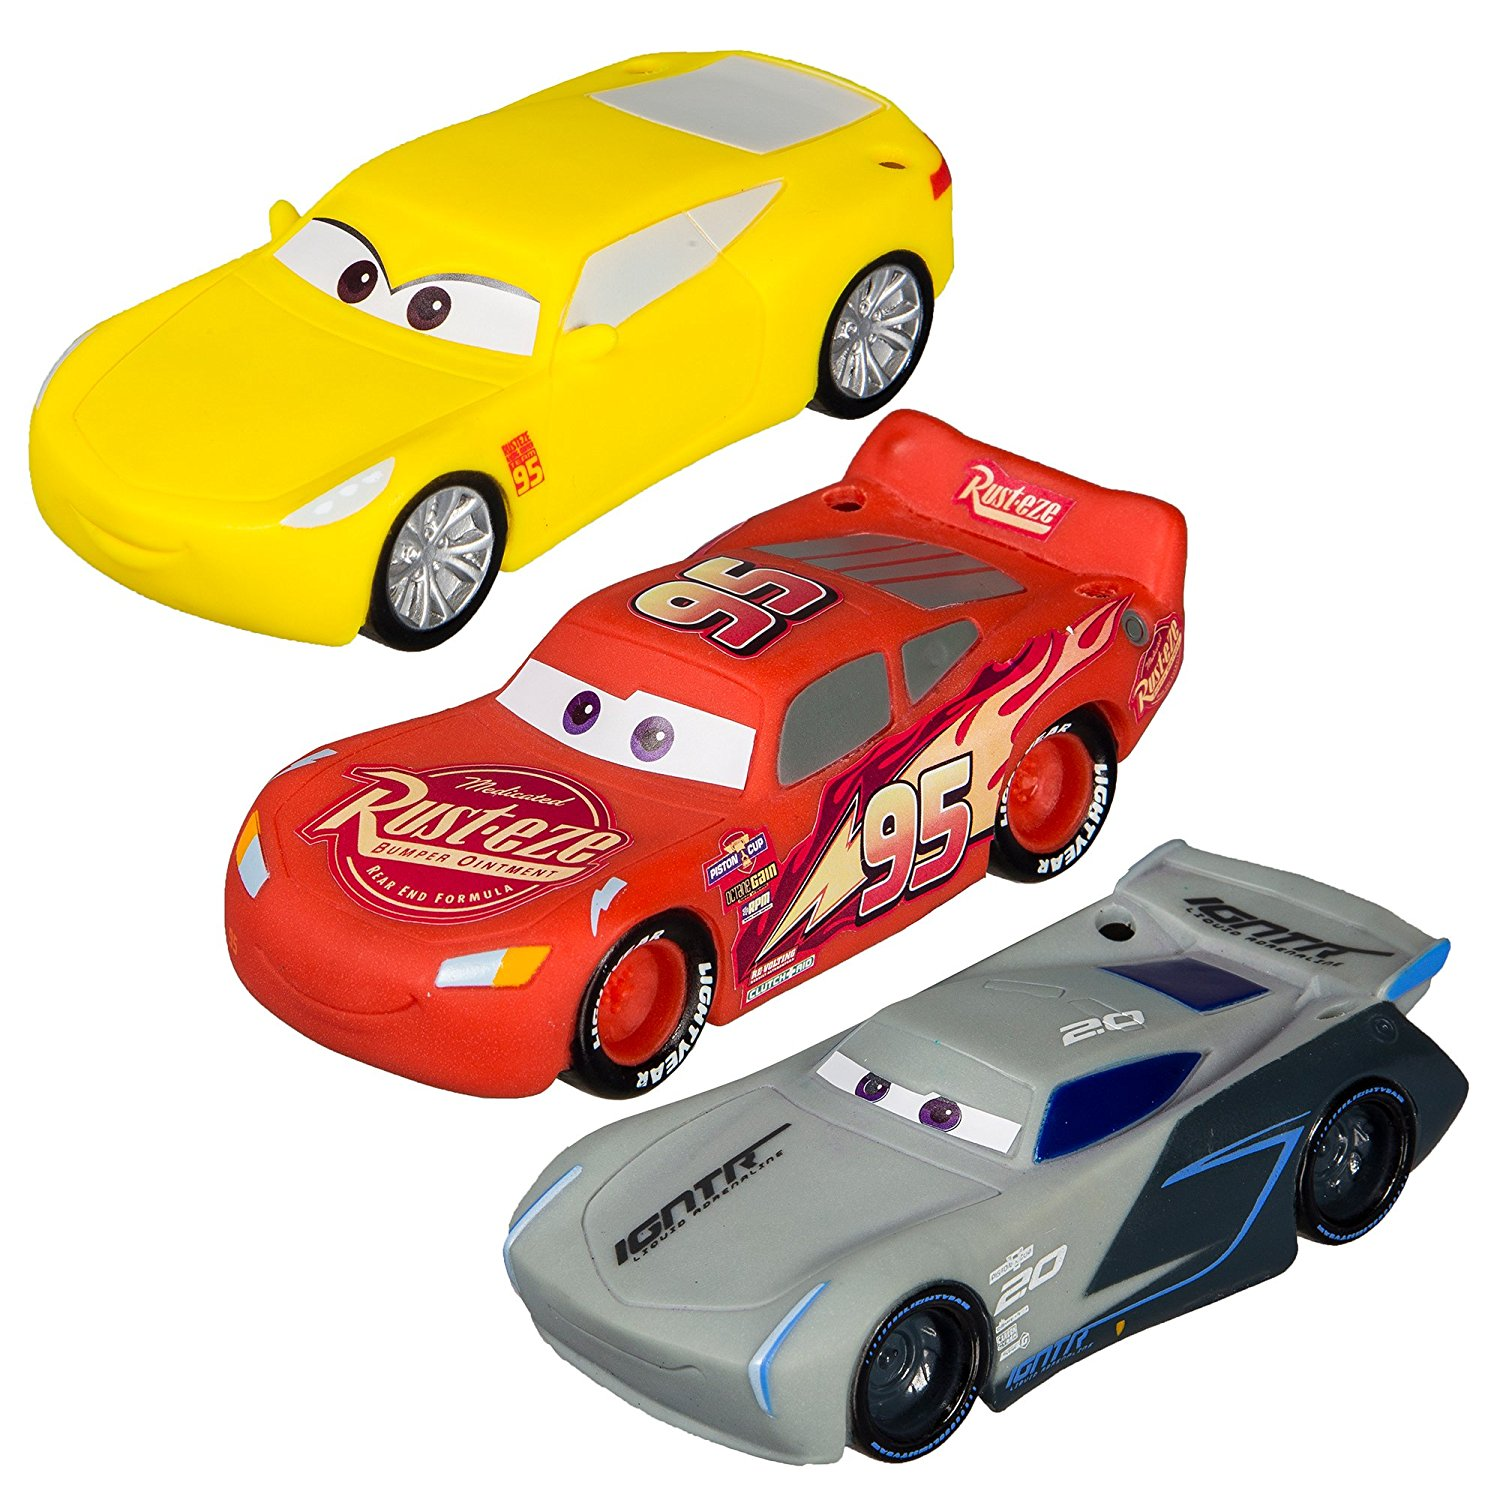 Cars The Movie: New Disney Pixar Cars 3 Movie Toys And Books For Kids